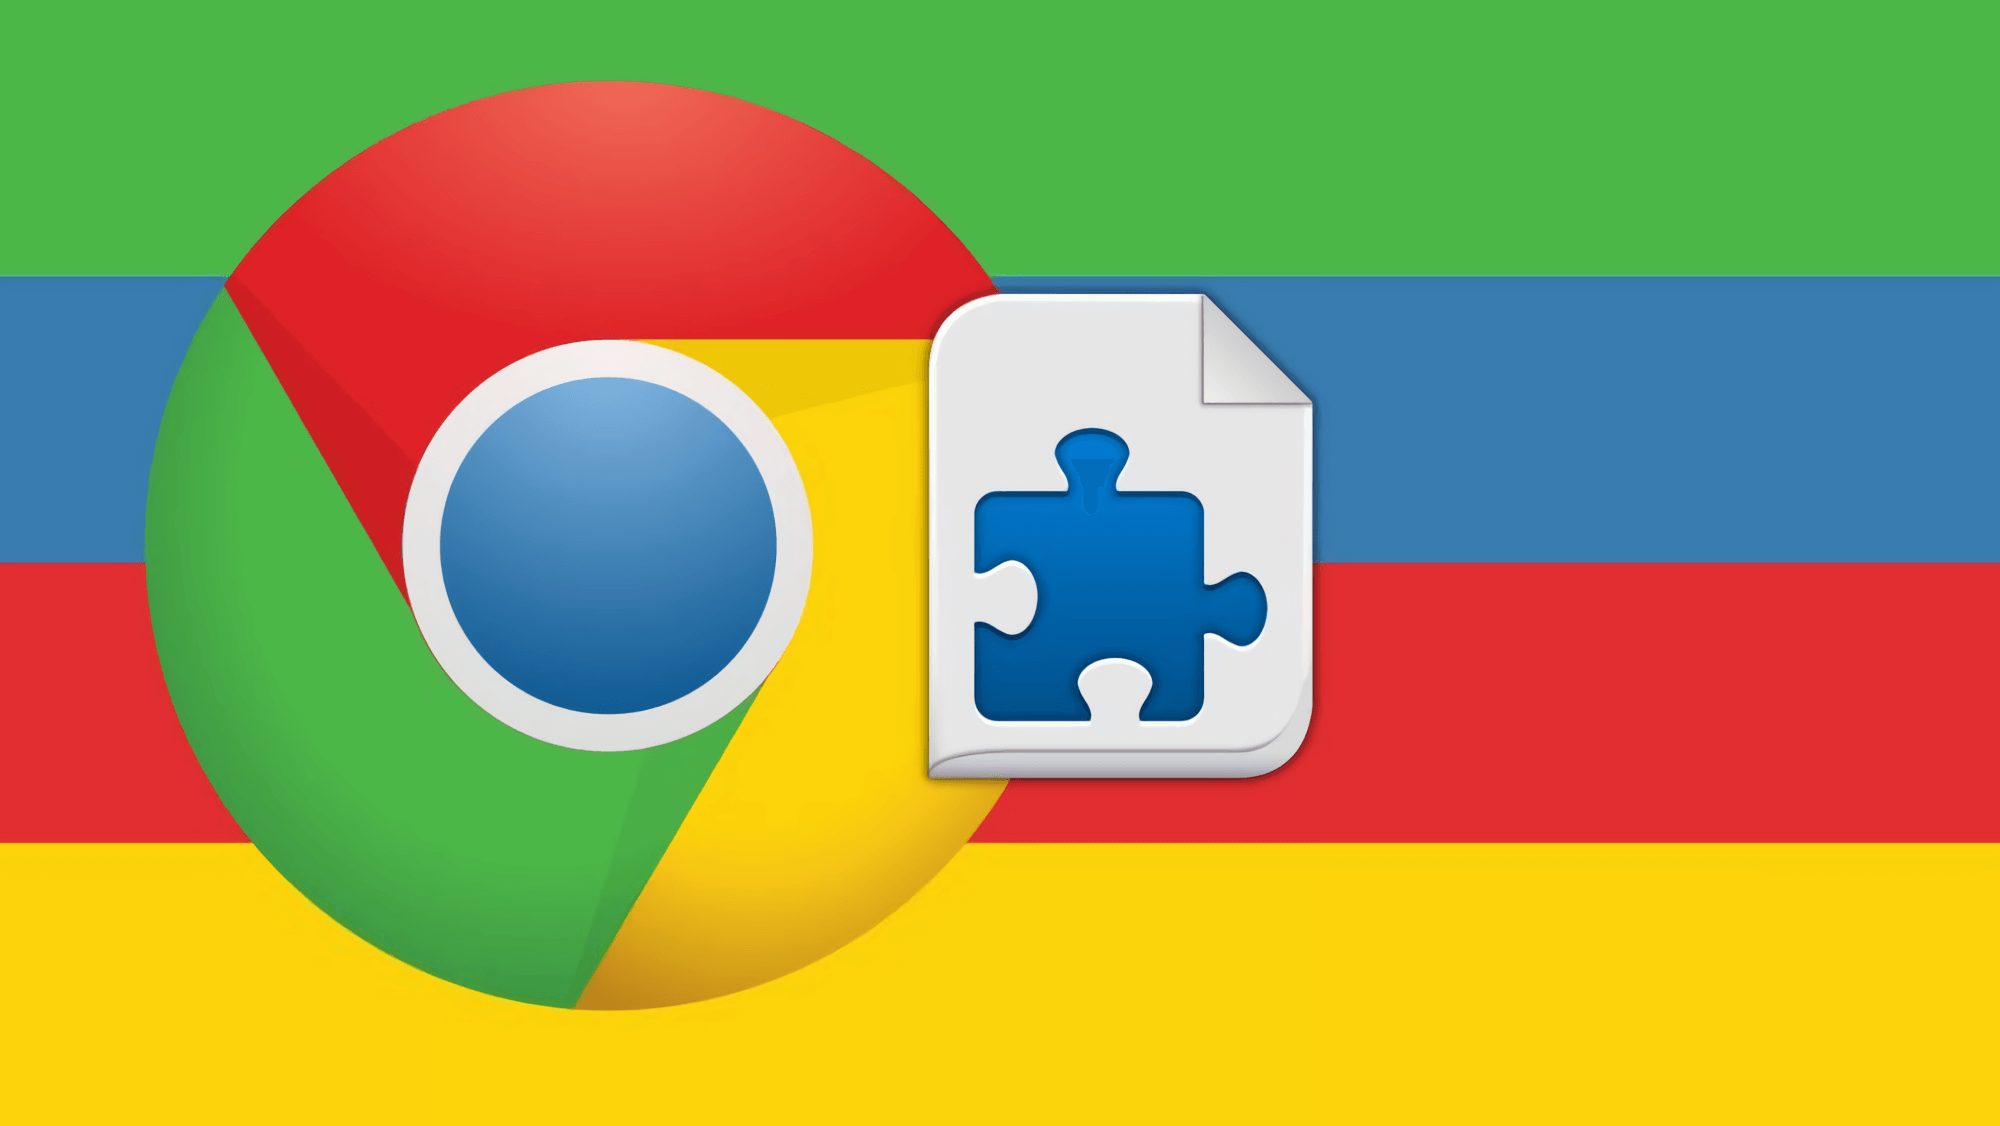 Google will kill Chrome extensions that steal too much of your data